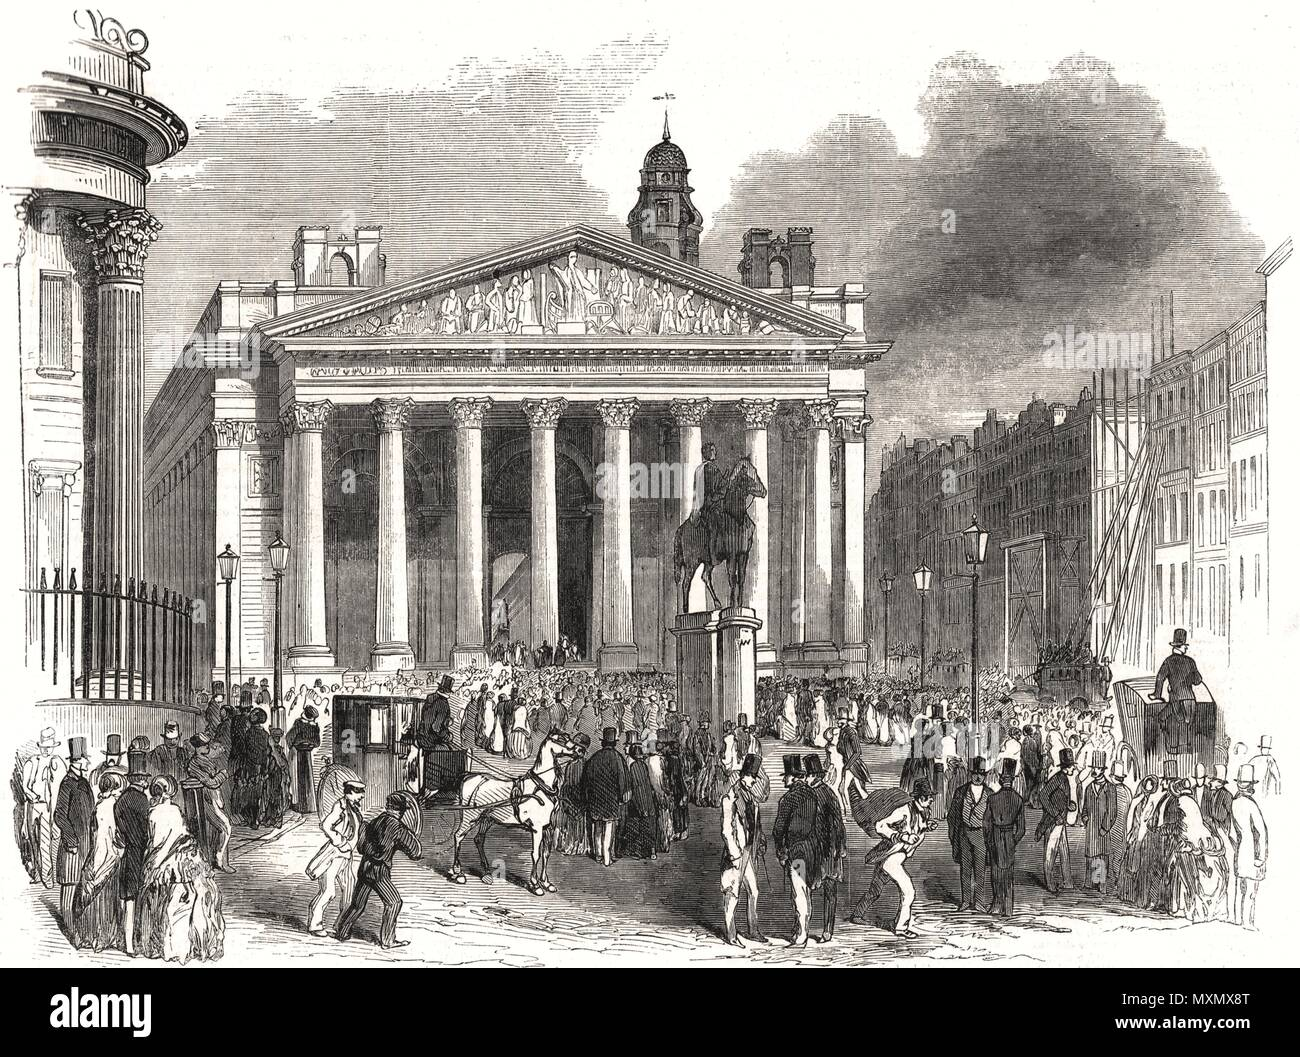 Proclamation of war against Russia, at the Royal Exchange. London 1854. The Illustrated London News - Stock Image